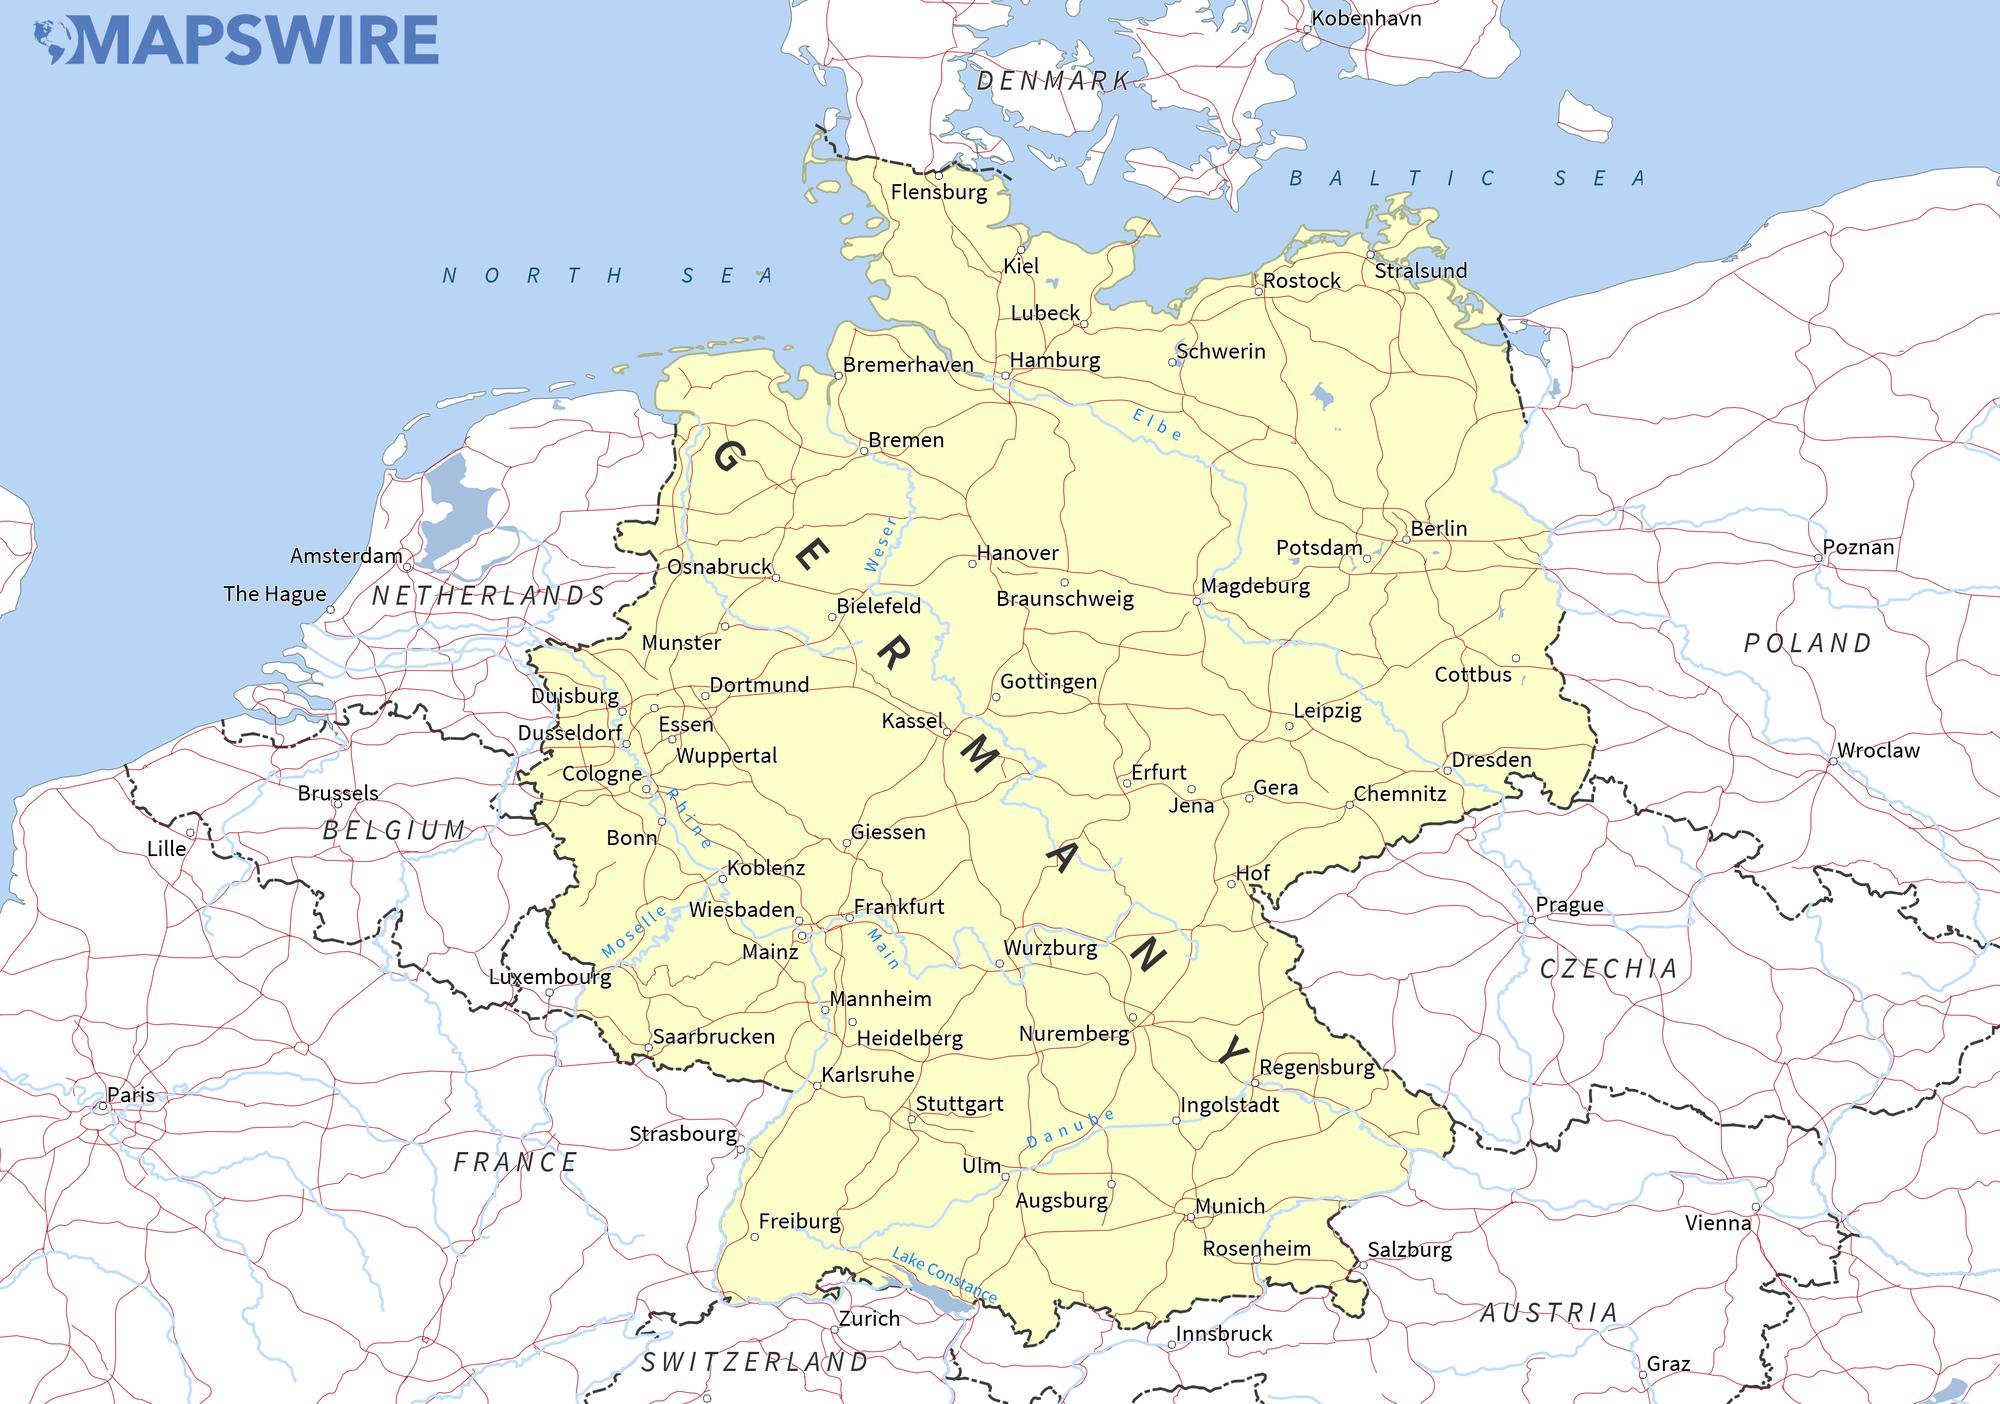 Map Of Germany Jpg.File Map Of Germany Jpg Wikimedia Commons